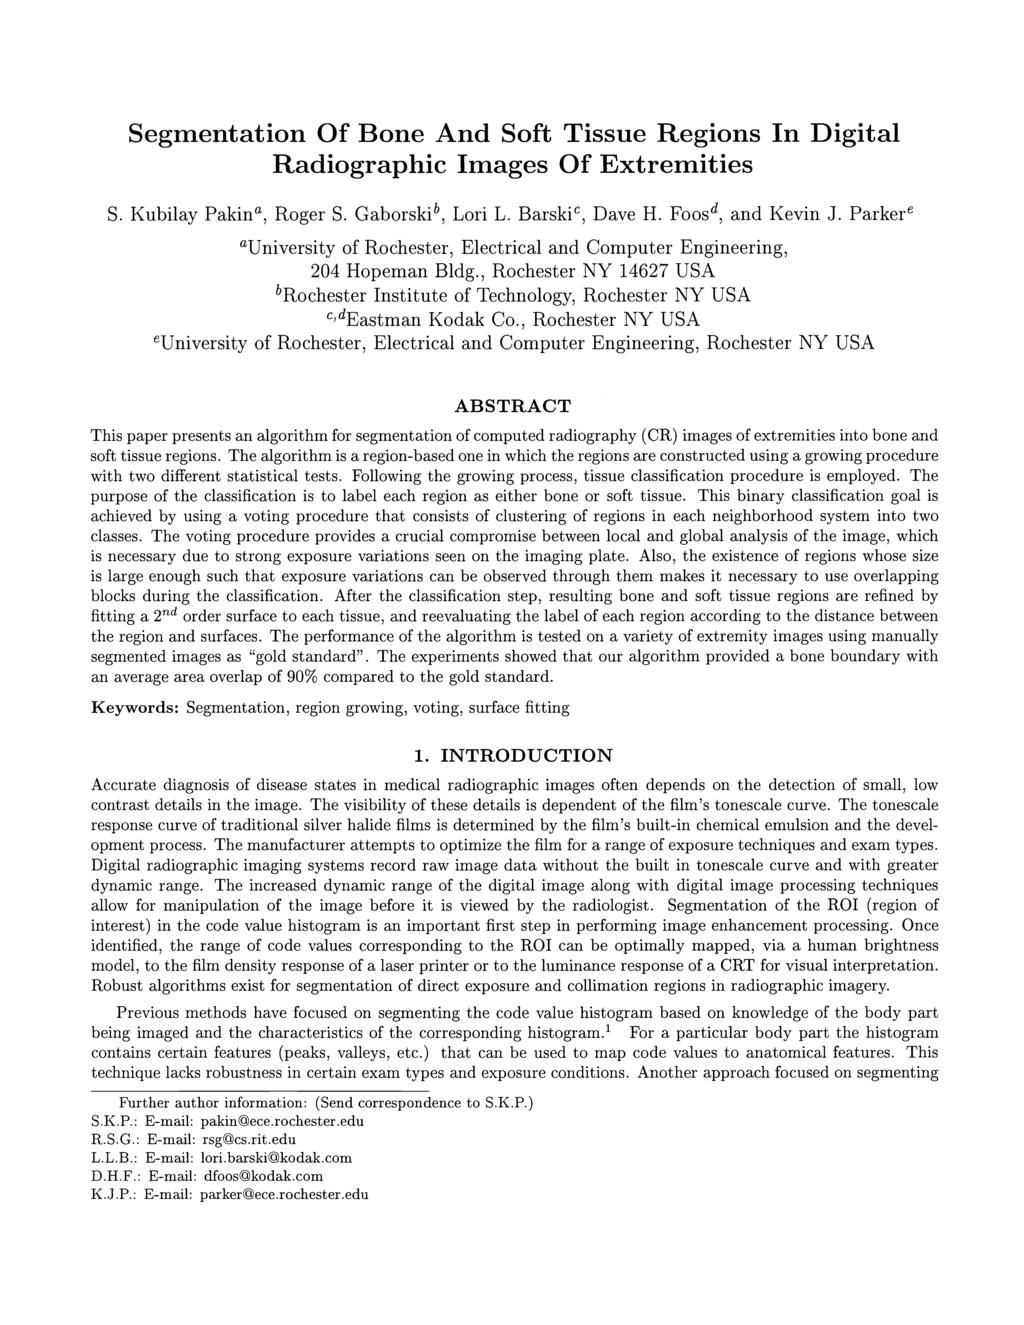 Segmentation Of Bone And Soft Tissue Regions In Digital Radiographic Images Of Extremities S. Kubilay Pakina, Roger S. Gaborskib, Lori L. Barskic, Dave H. Foosd, and Kevin J.